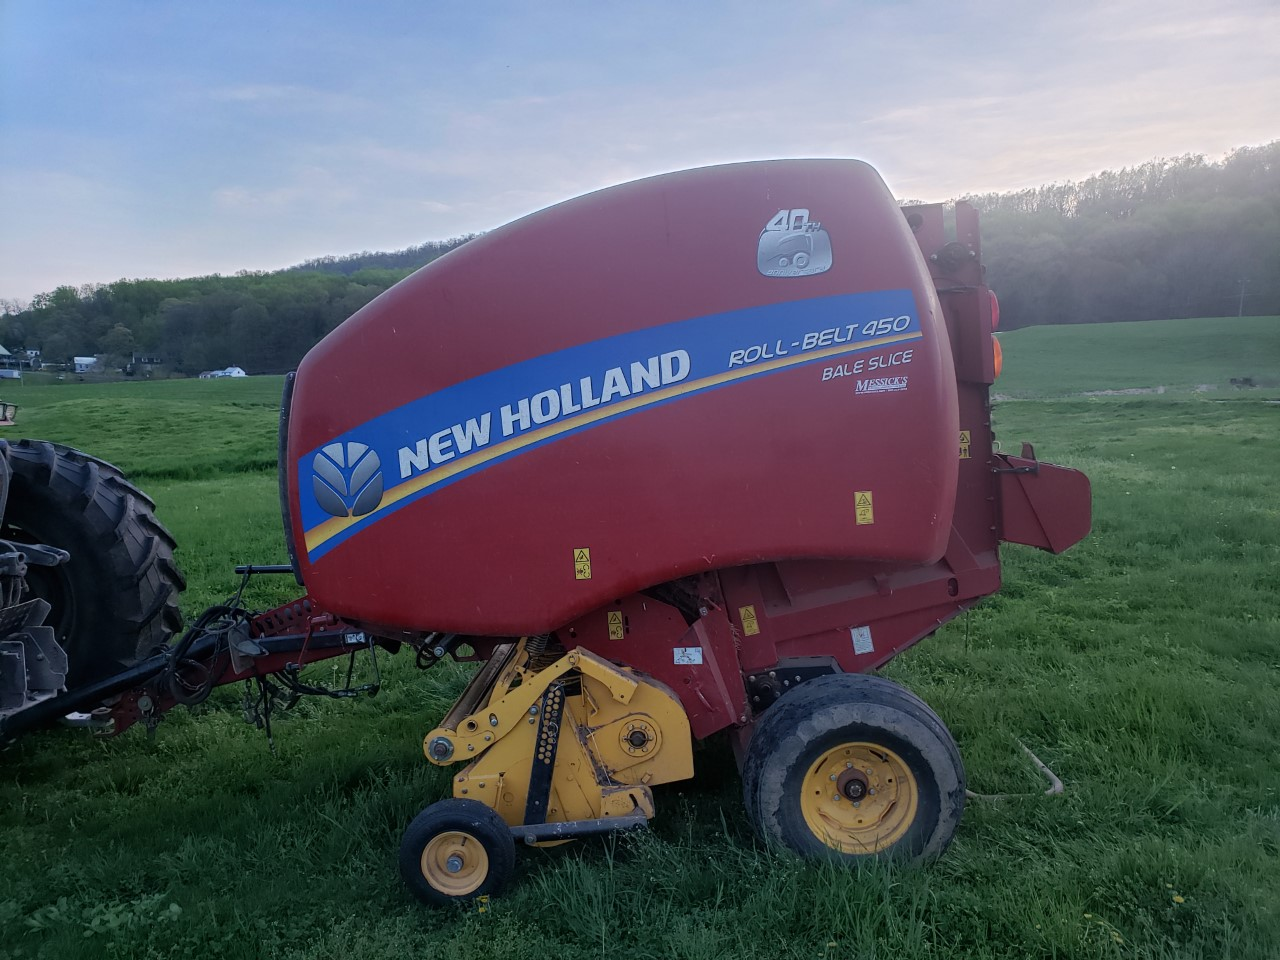 Used NEW HOLLAND ROLL-BELT 450SL $19,800.00